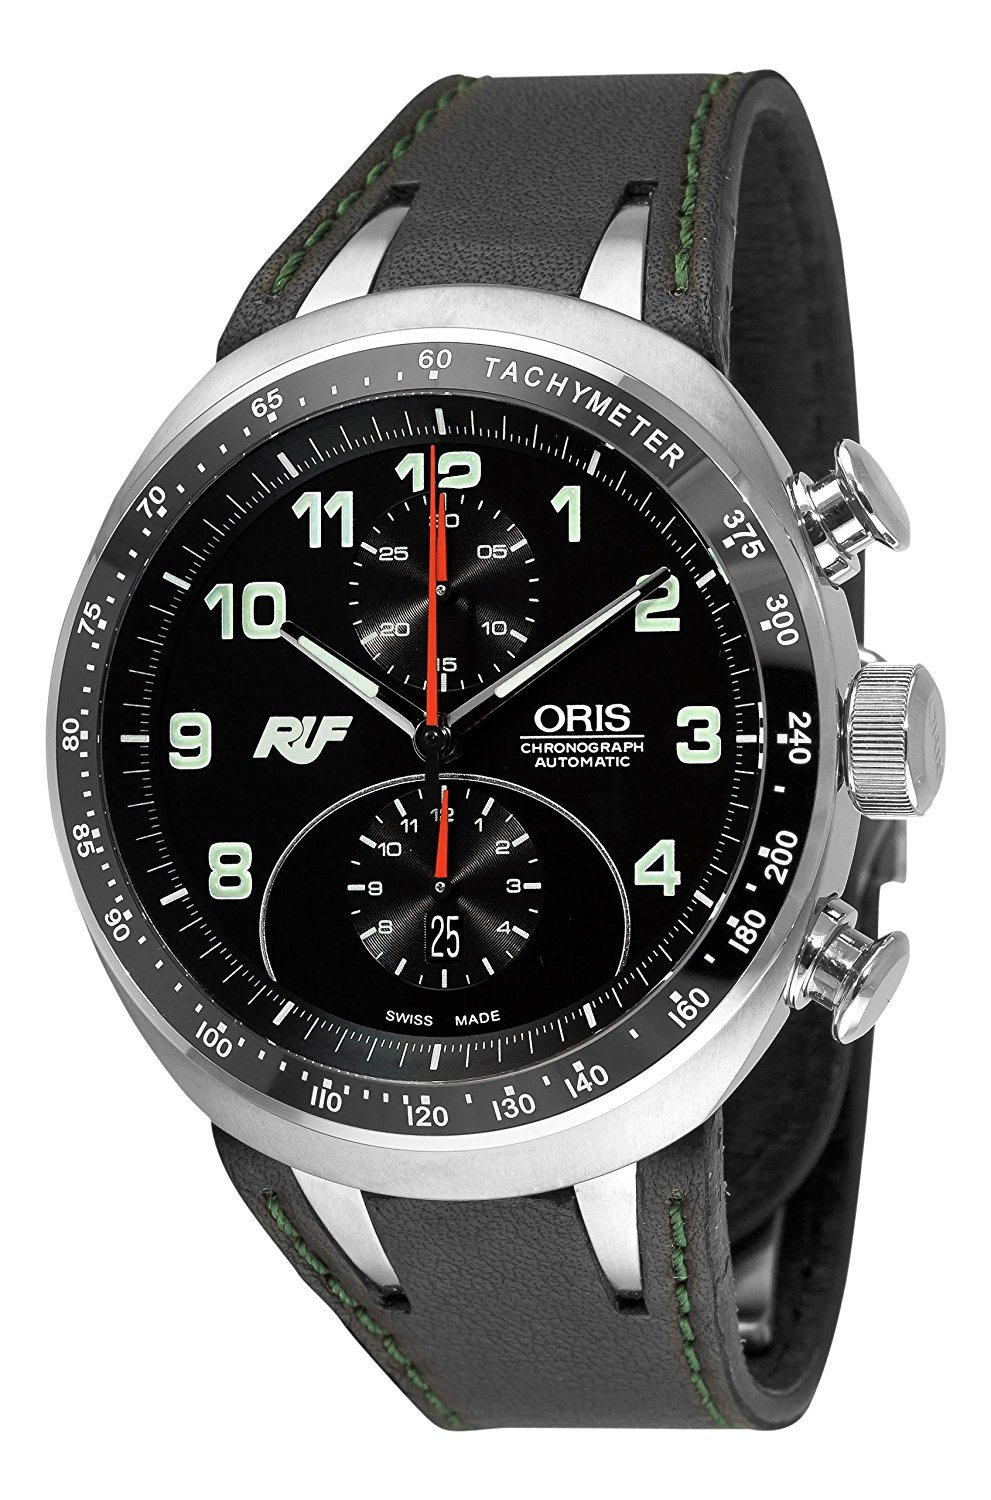 3224c31843b Oris Men s 67376117084LS Ruf CTR3 Chronograph Limited Edition Black Dial  Watch